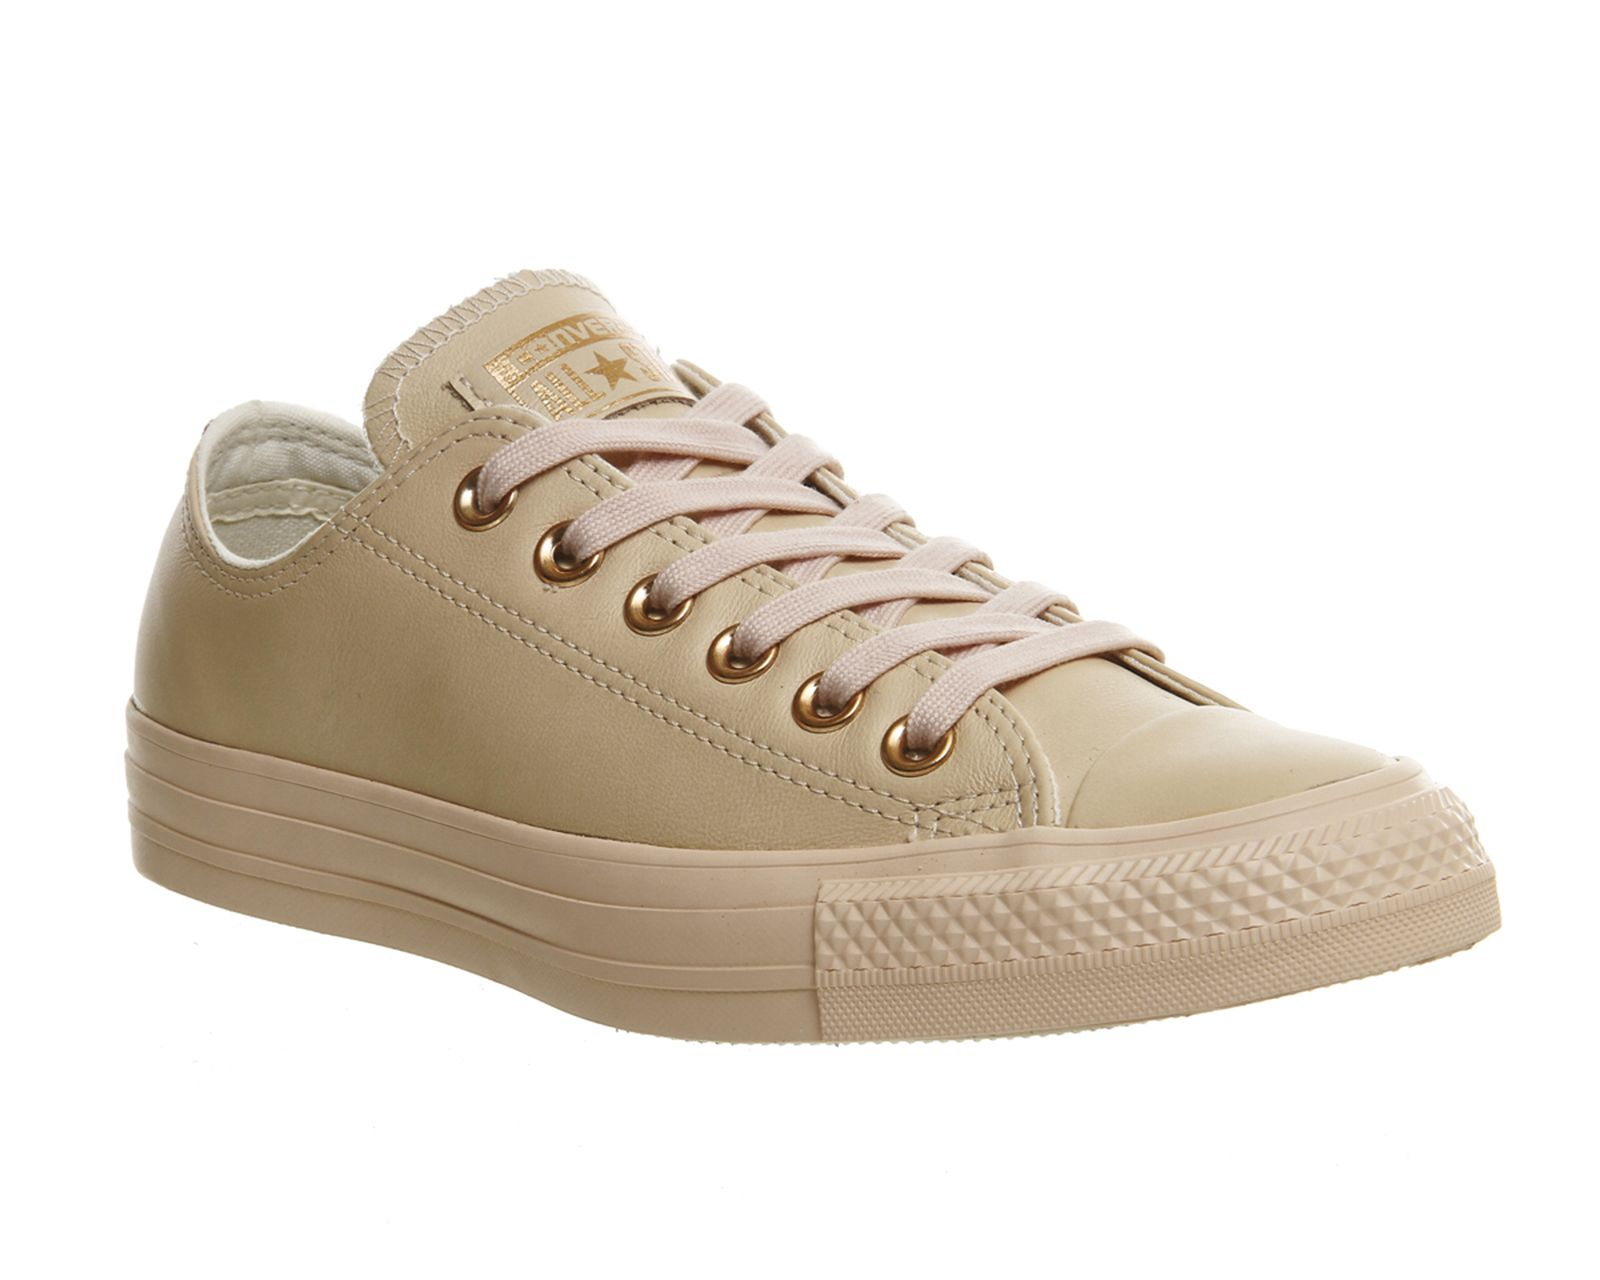 9eb203743ed334 Buy Pastel Rose Tan Rose Gold Exclusive Converse All Star Low Leather from  OFFICE.co.uk.